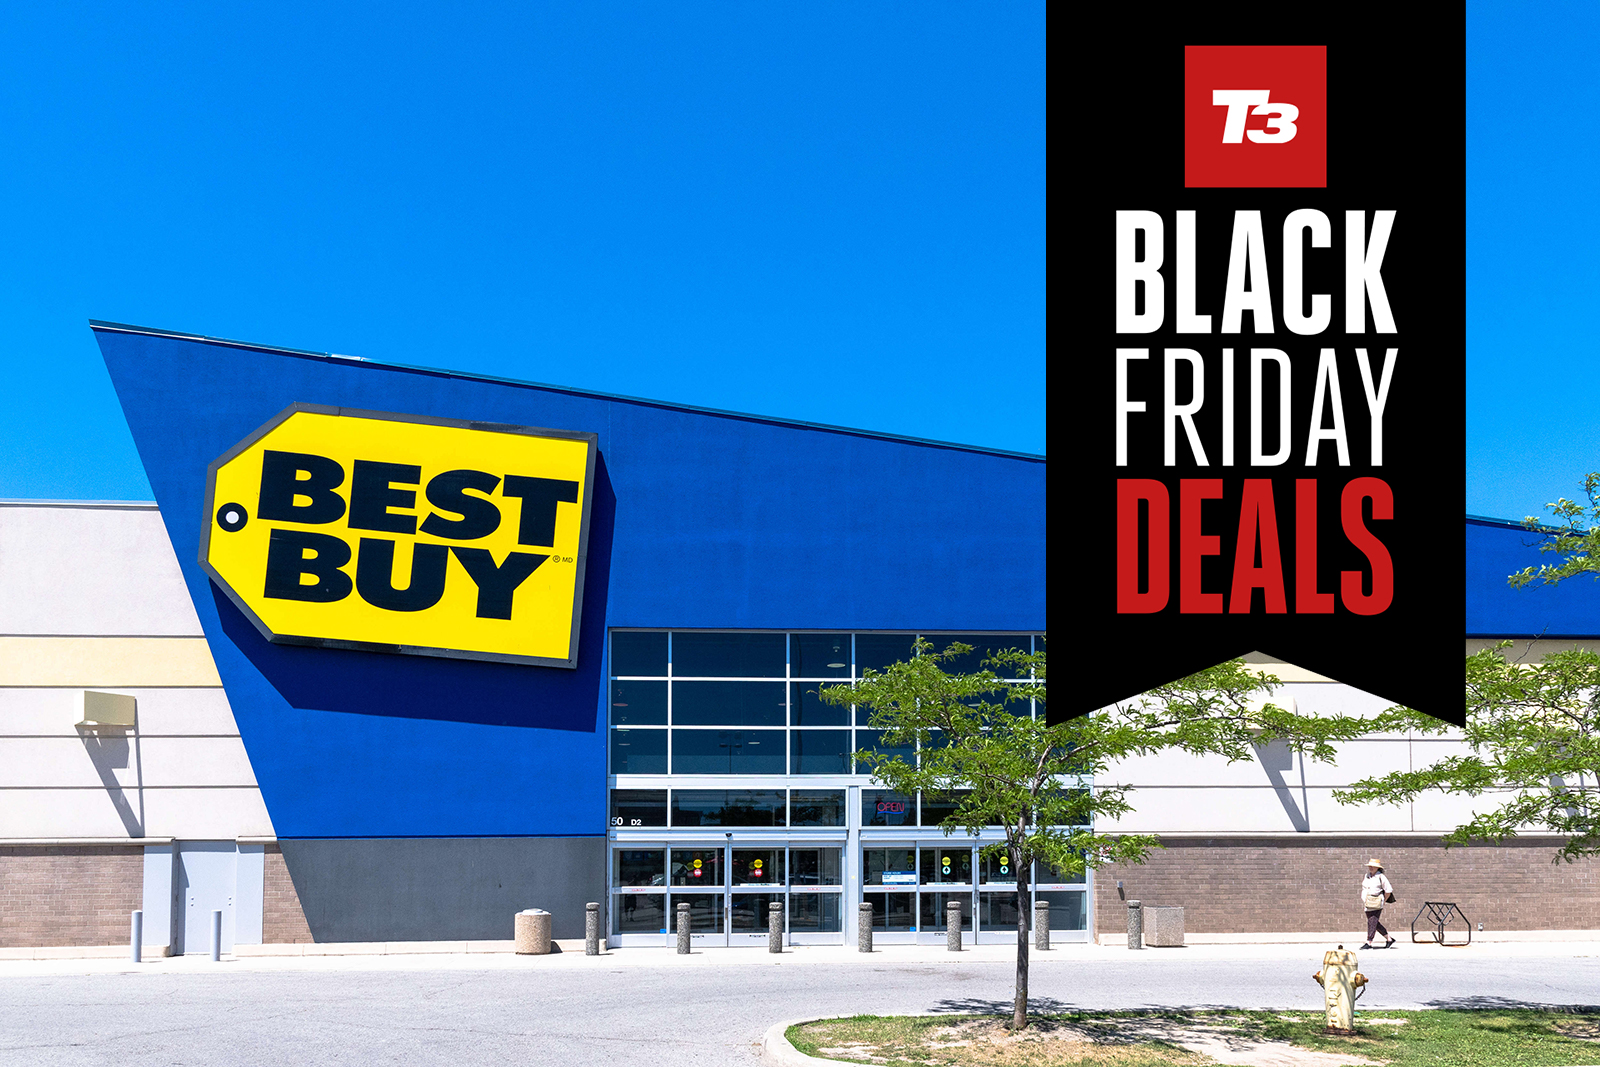 Best Buy Black Friday Deals 2020 The Best Holiday Deals Happening Now T3